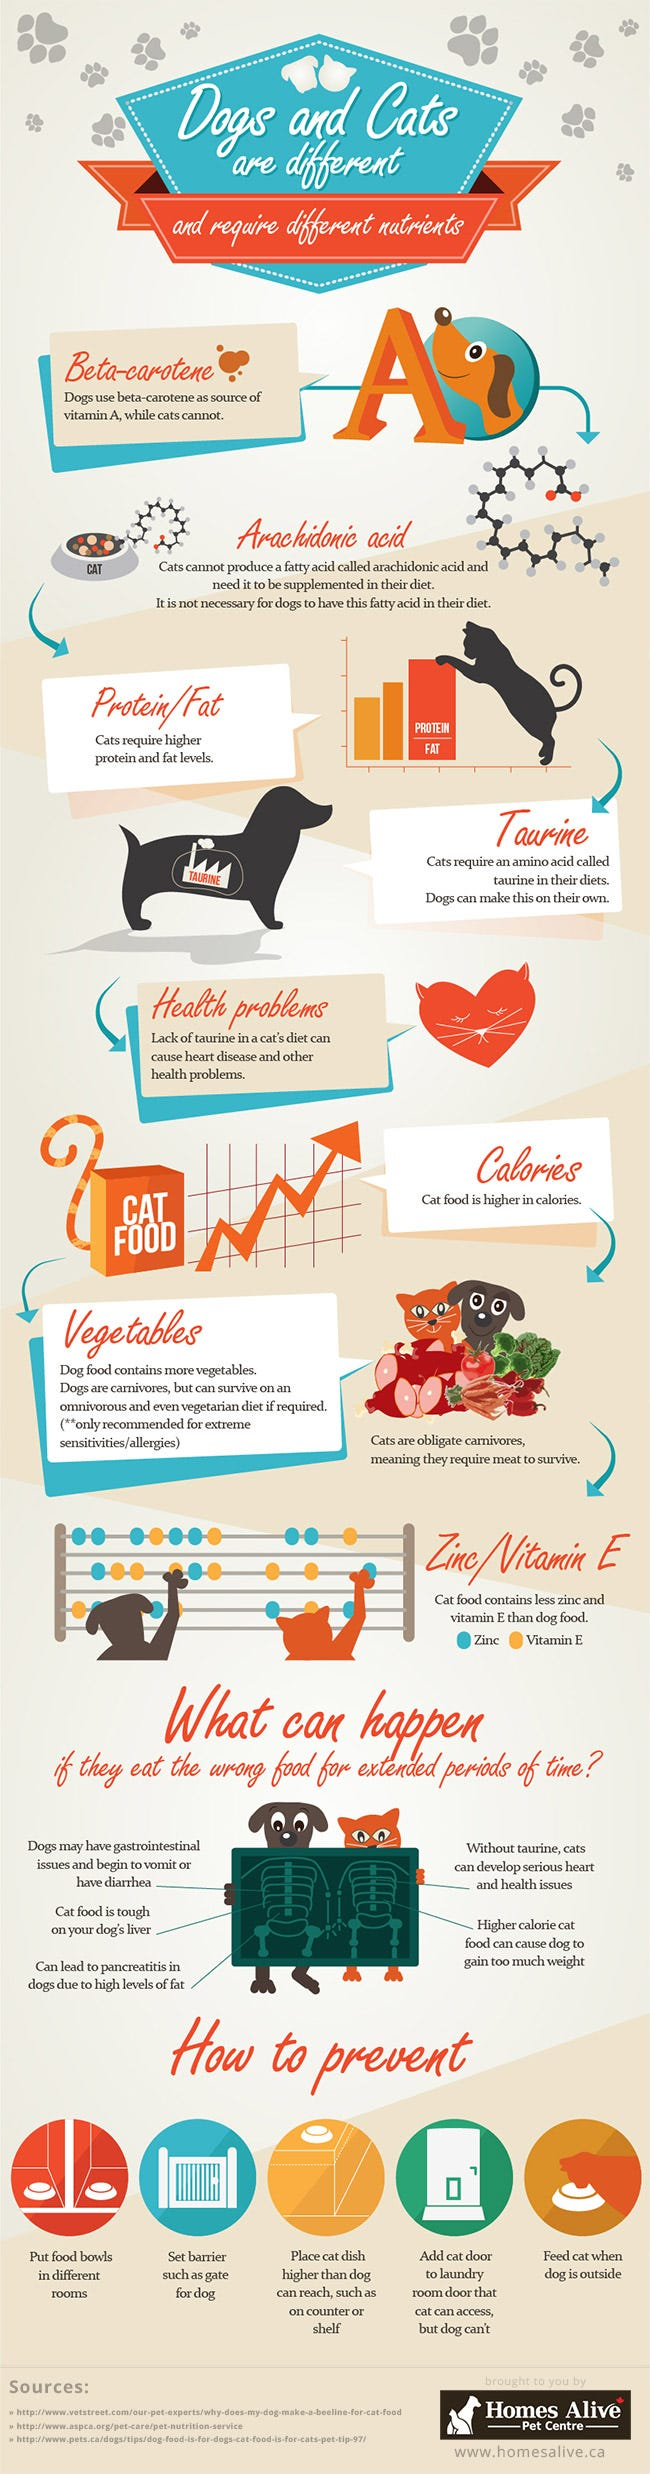 Differences Between Dog and Cat Food Infographic